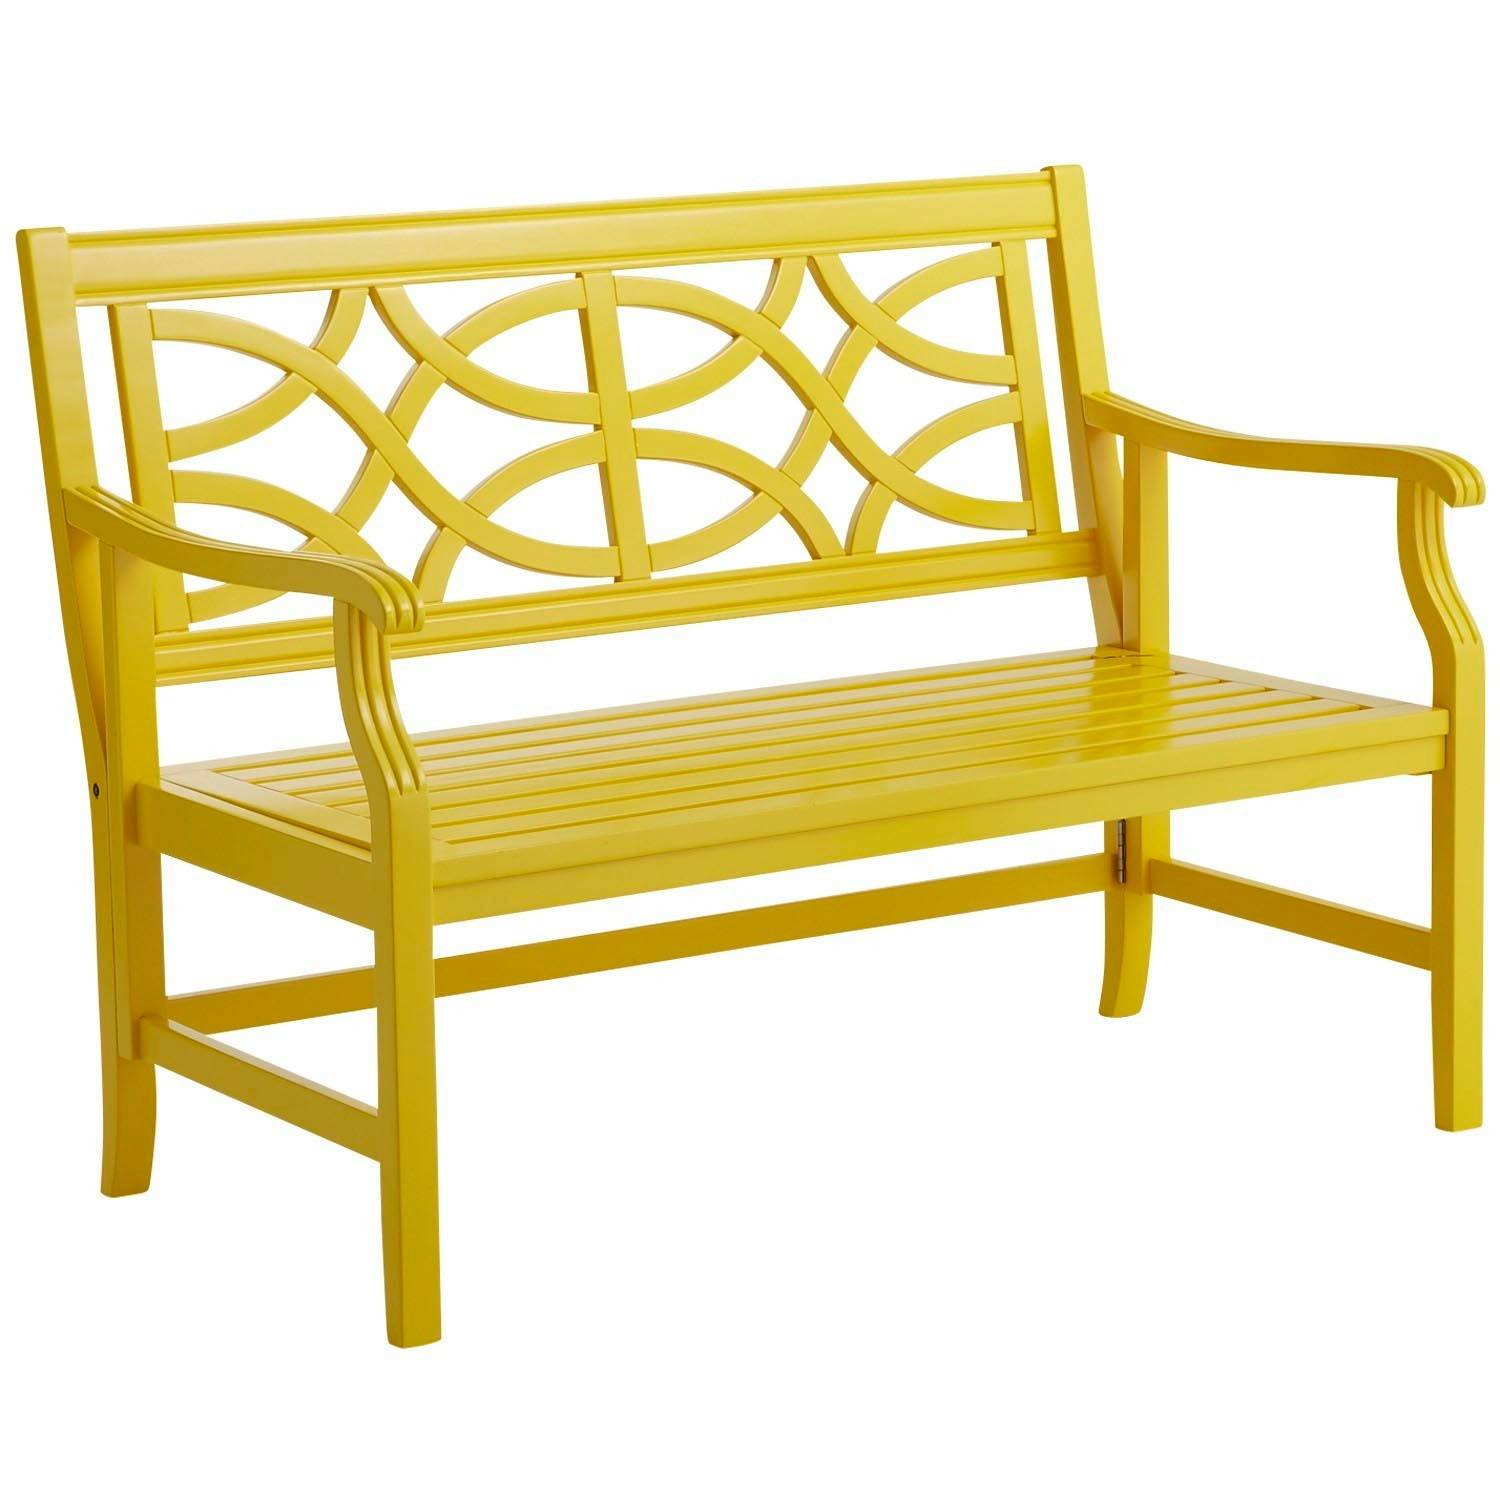 A bench in a playful hue can work well with more conservative, neutral outdoor furniture.